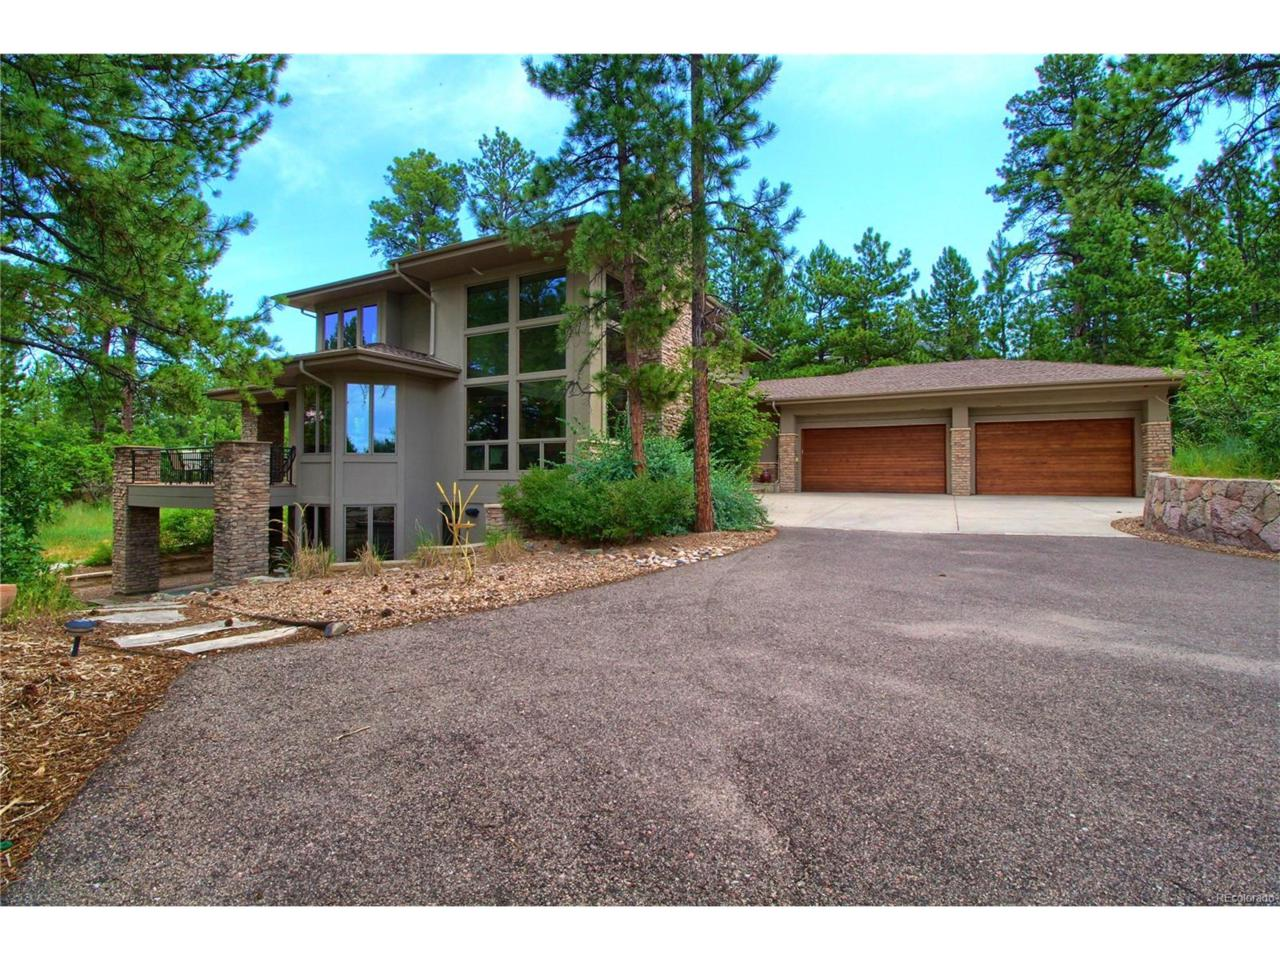 967 Country Club Parkway, Castle Rock, CO 80108 (MLS #6389466) :: 8z Real Estate